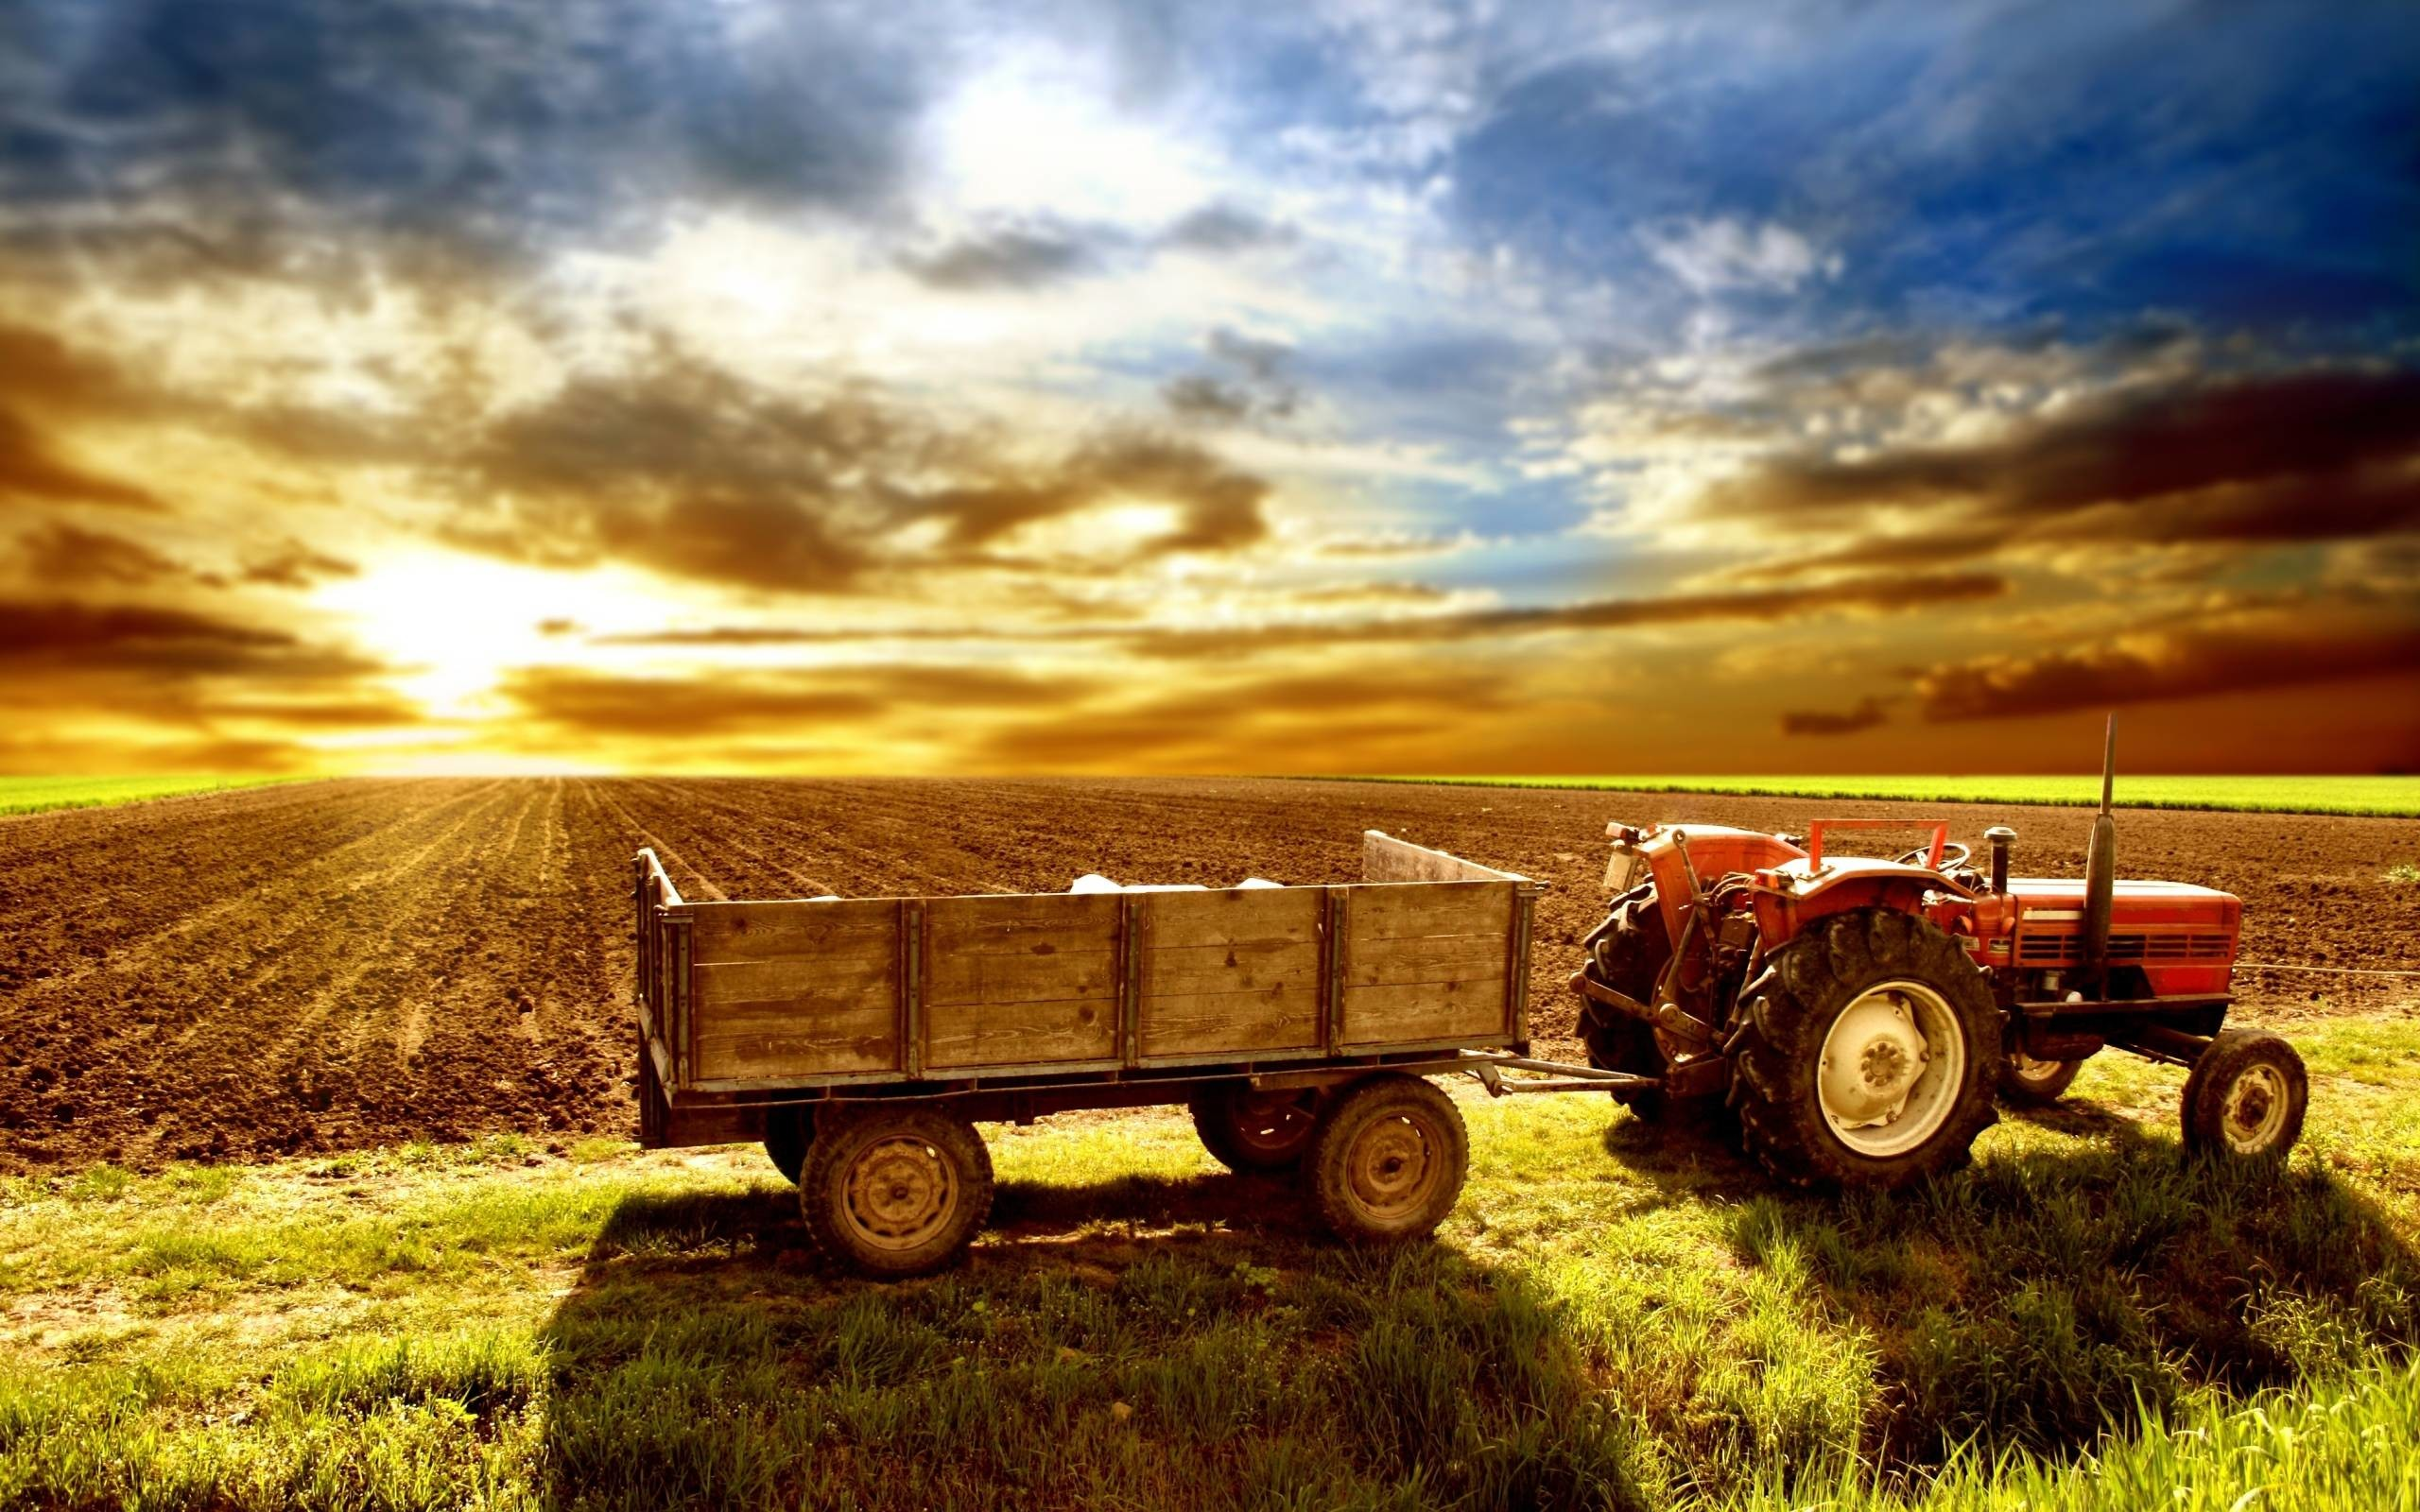 Res: 2560x1600, Tractor Wallpapers